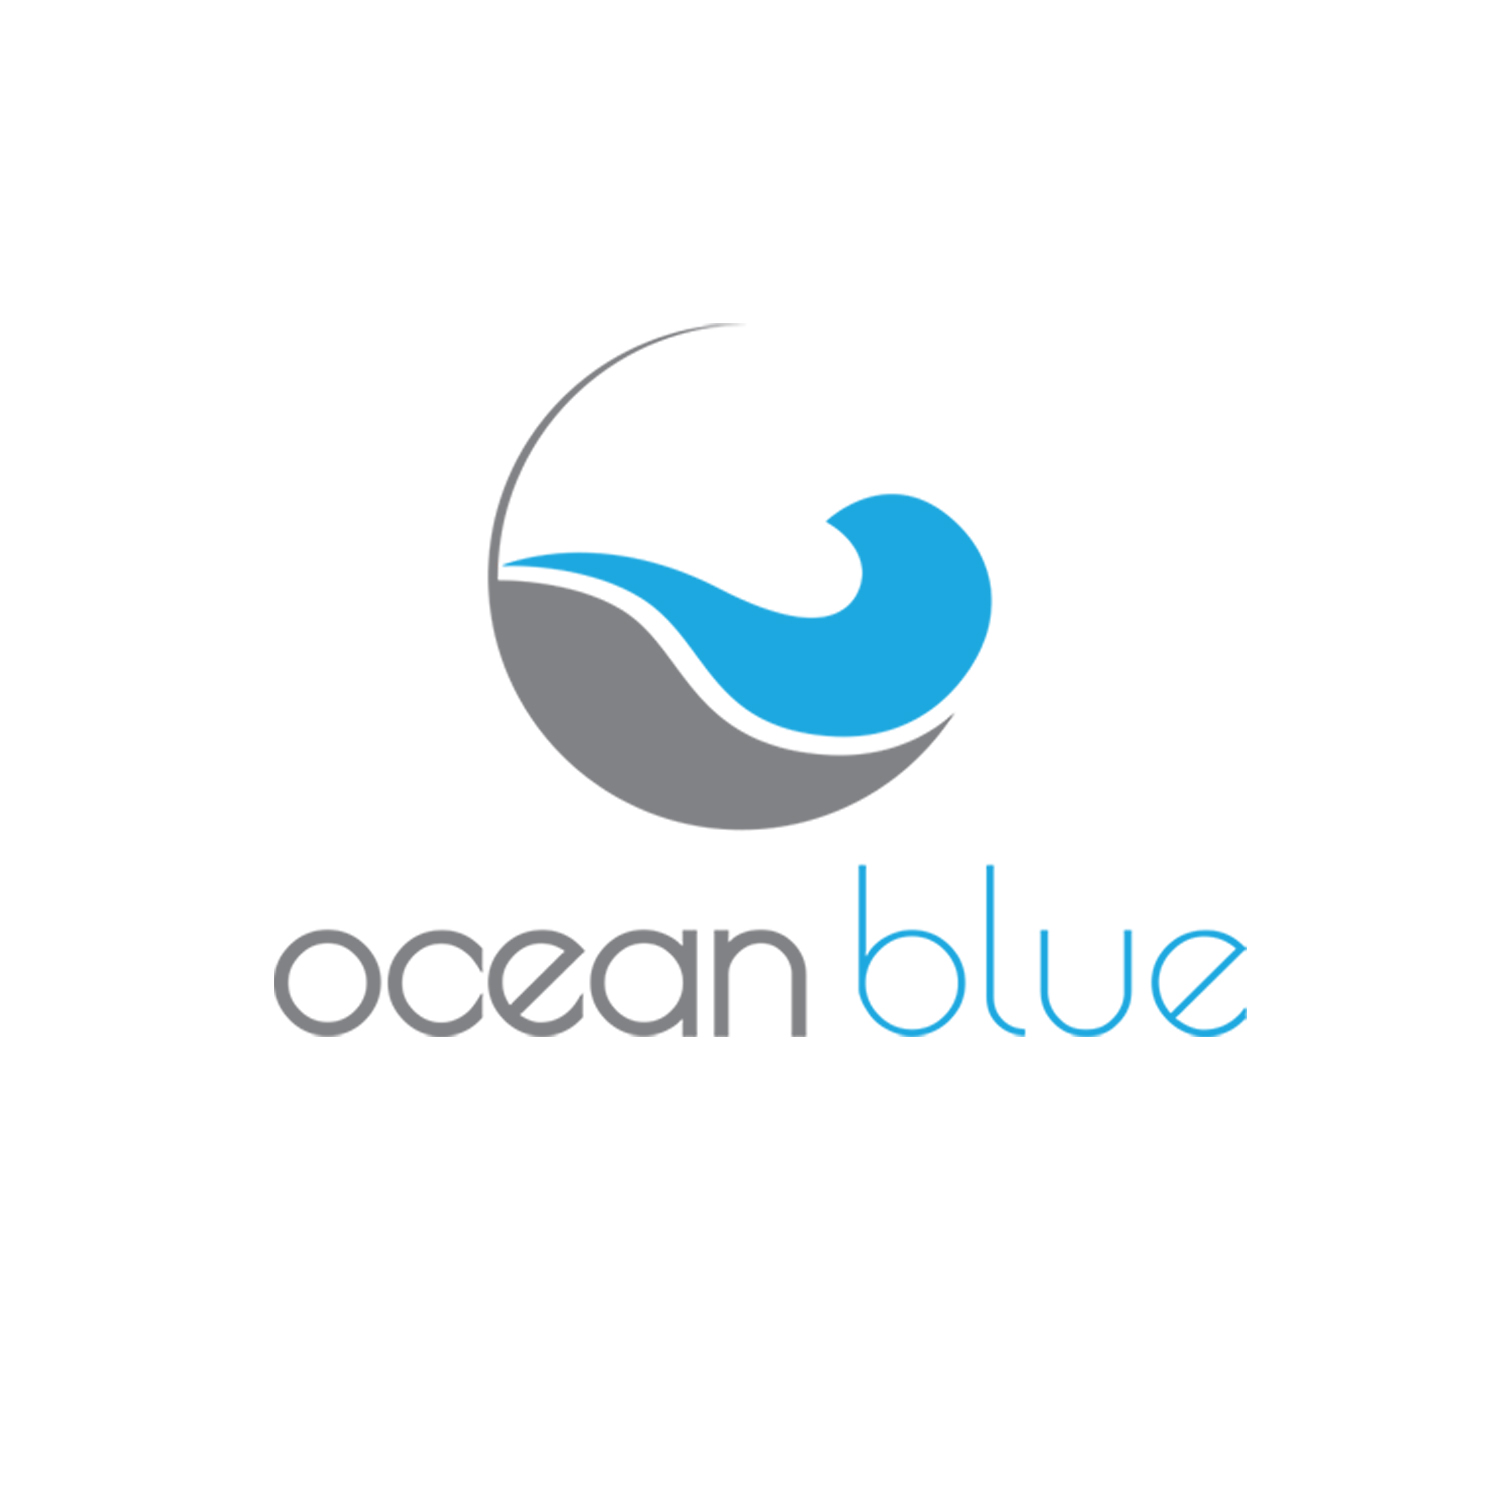 exklusiv elegant advertising logo design f r ocean blue von hasanusjamanrubel design 9875268. Black Bedroom Furniture Sets. Home Design Ideas